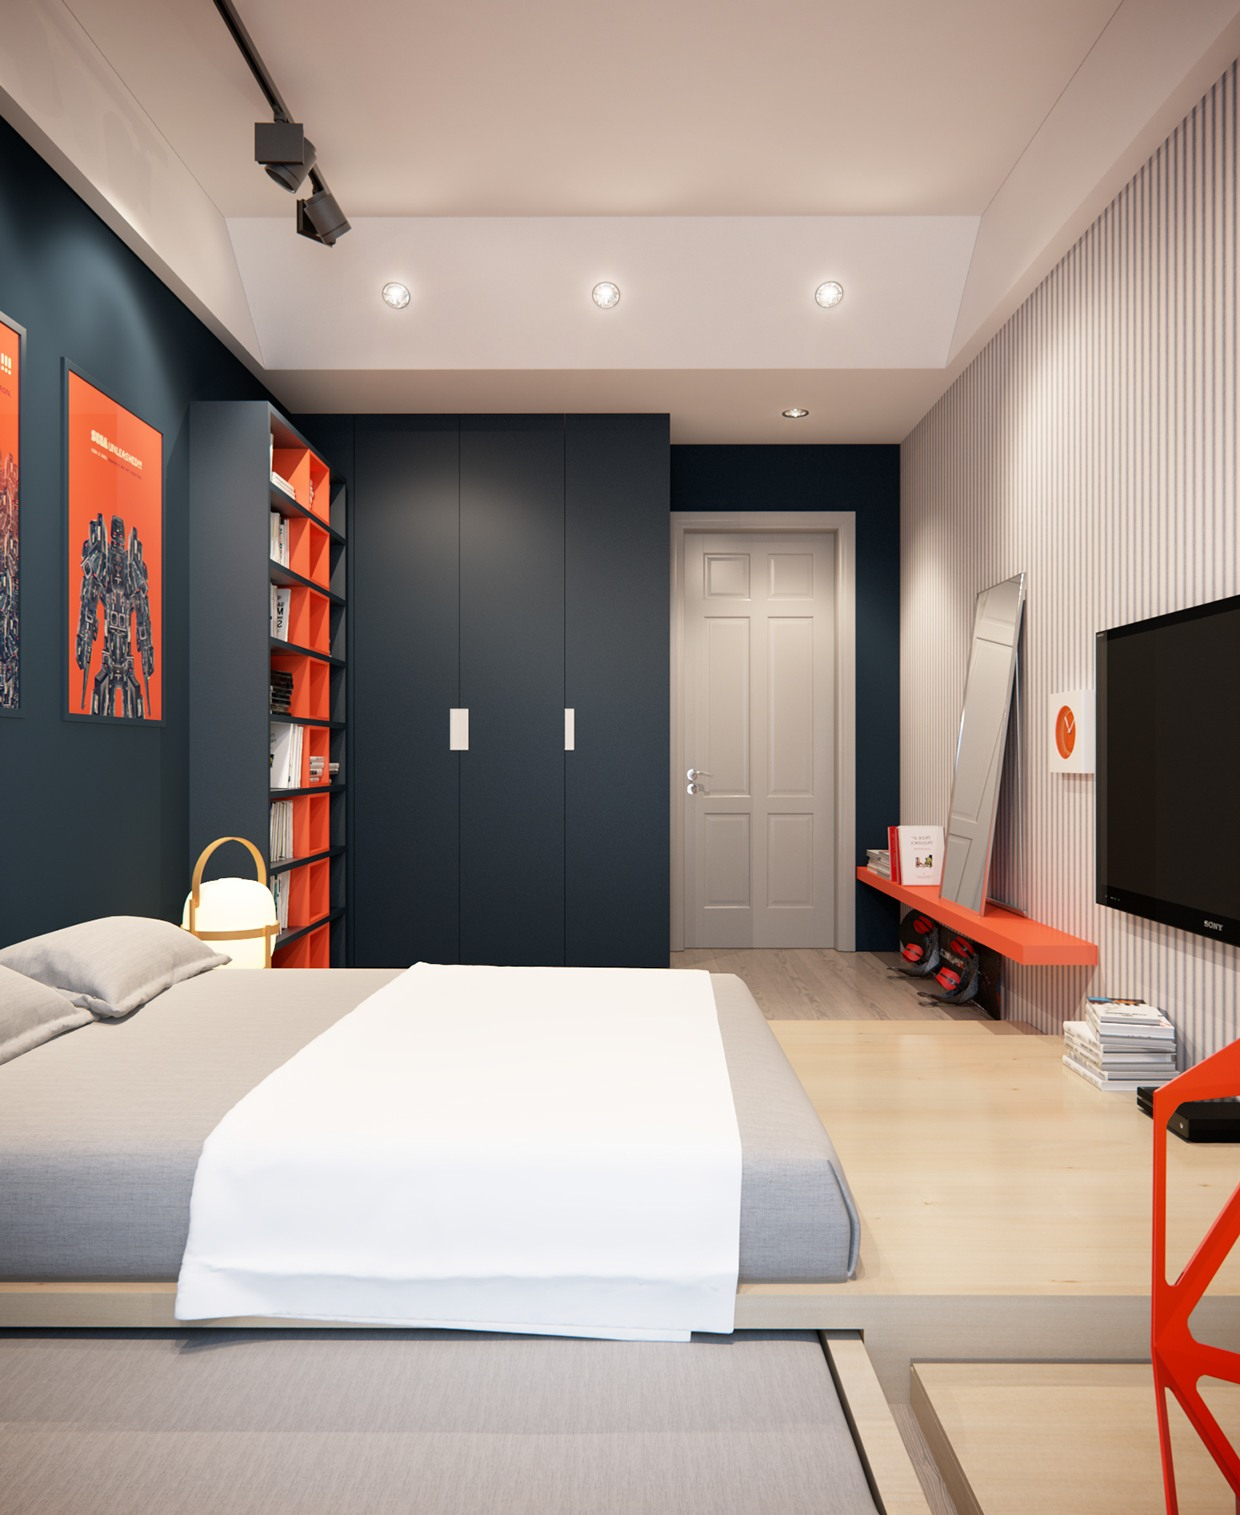 Boys bedroom design interior design ideas for Interior designs for bedroom